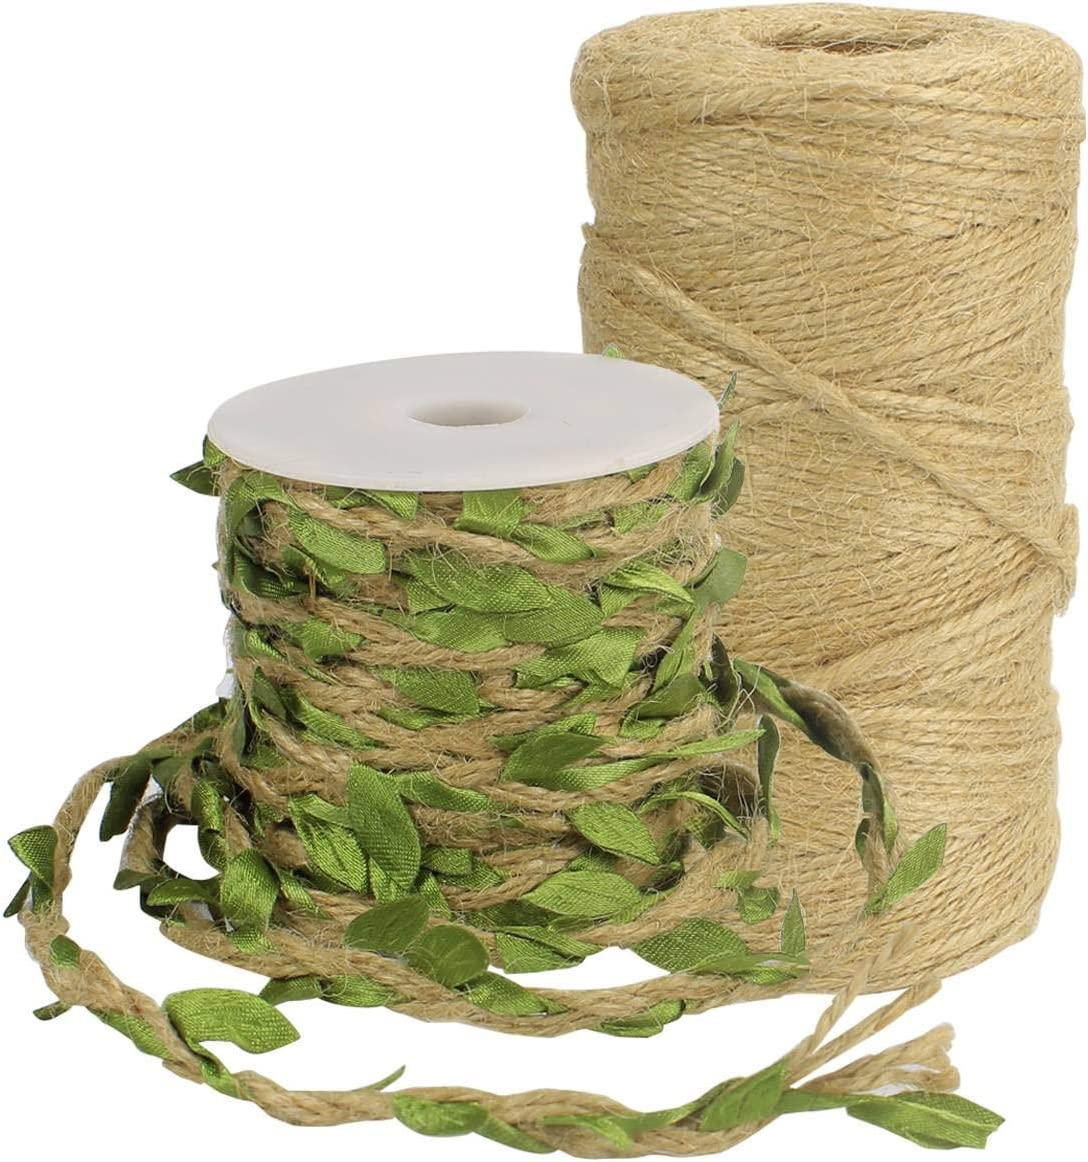 Blue Tenn Well Burlap Leaf Ribbon 66 Feet 5mm Natural Jute Twine with Artificial Leaves for Crafts Wedding Gardening Party Home Decor